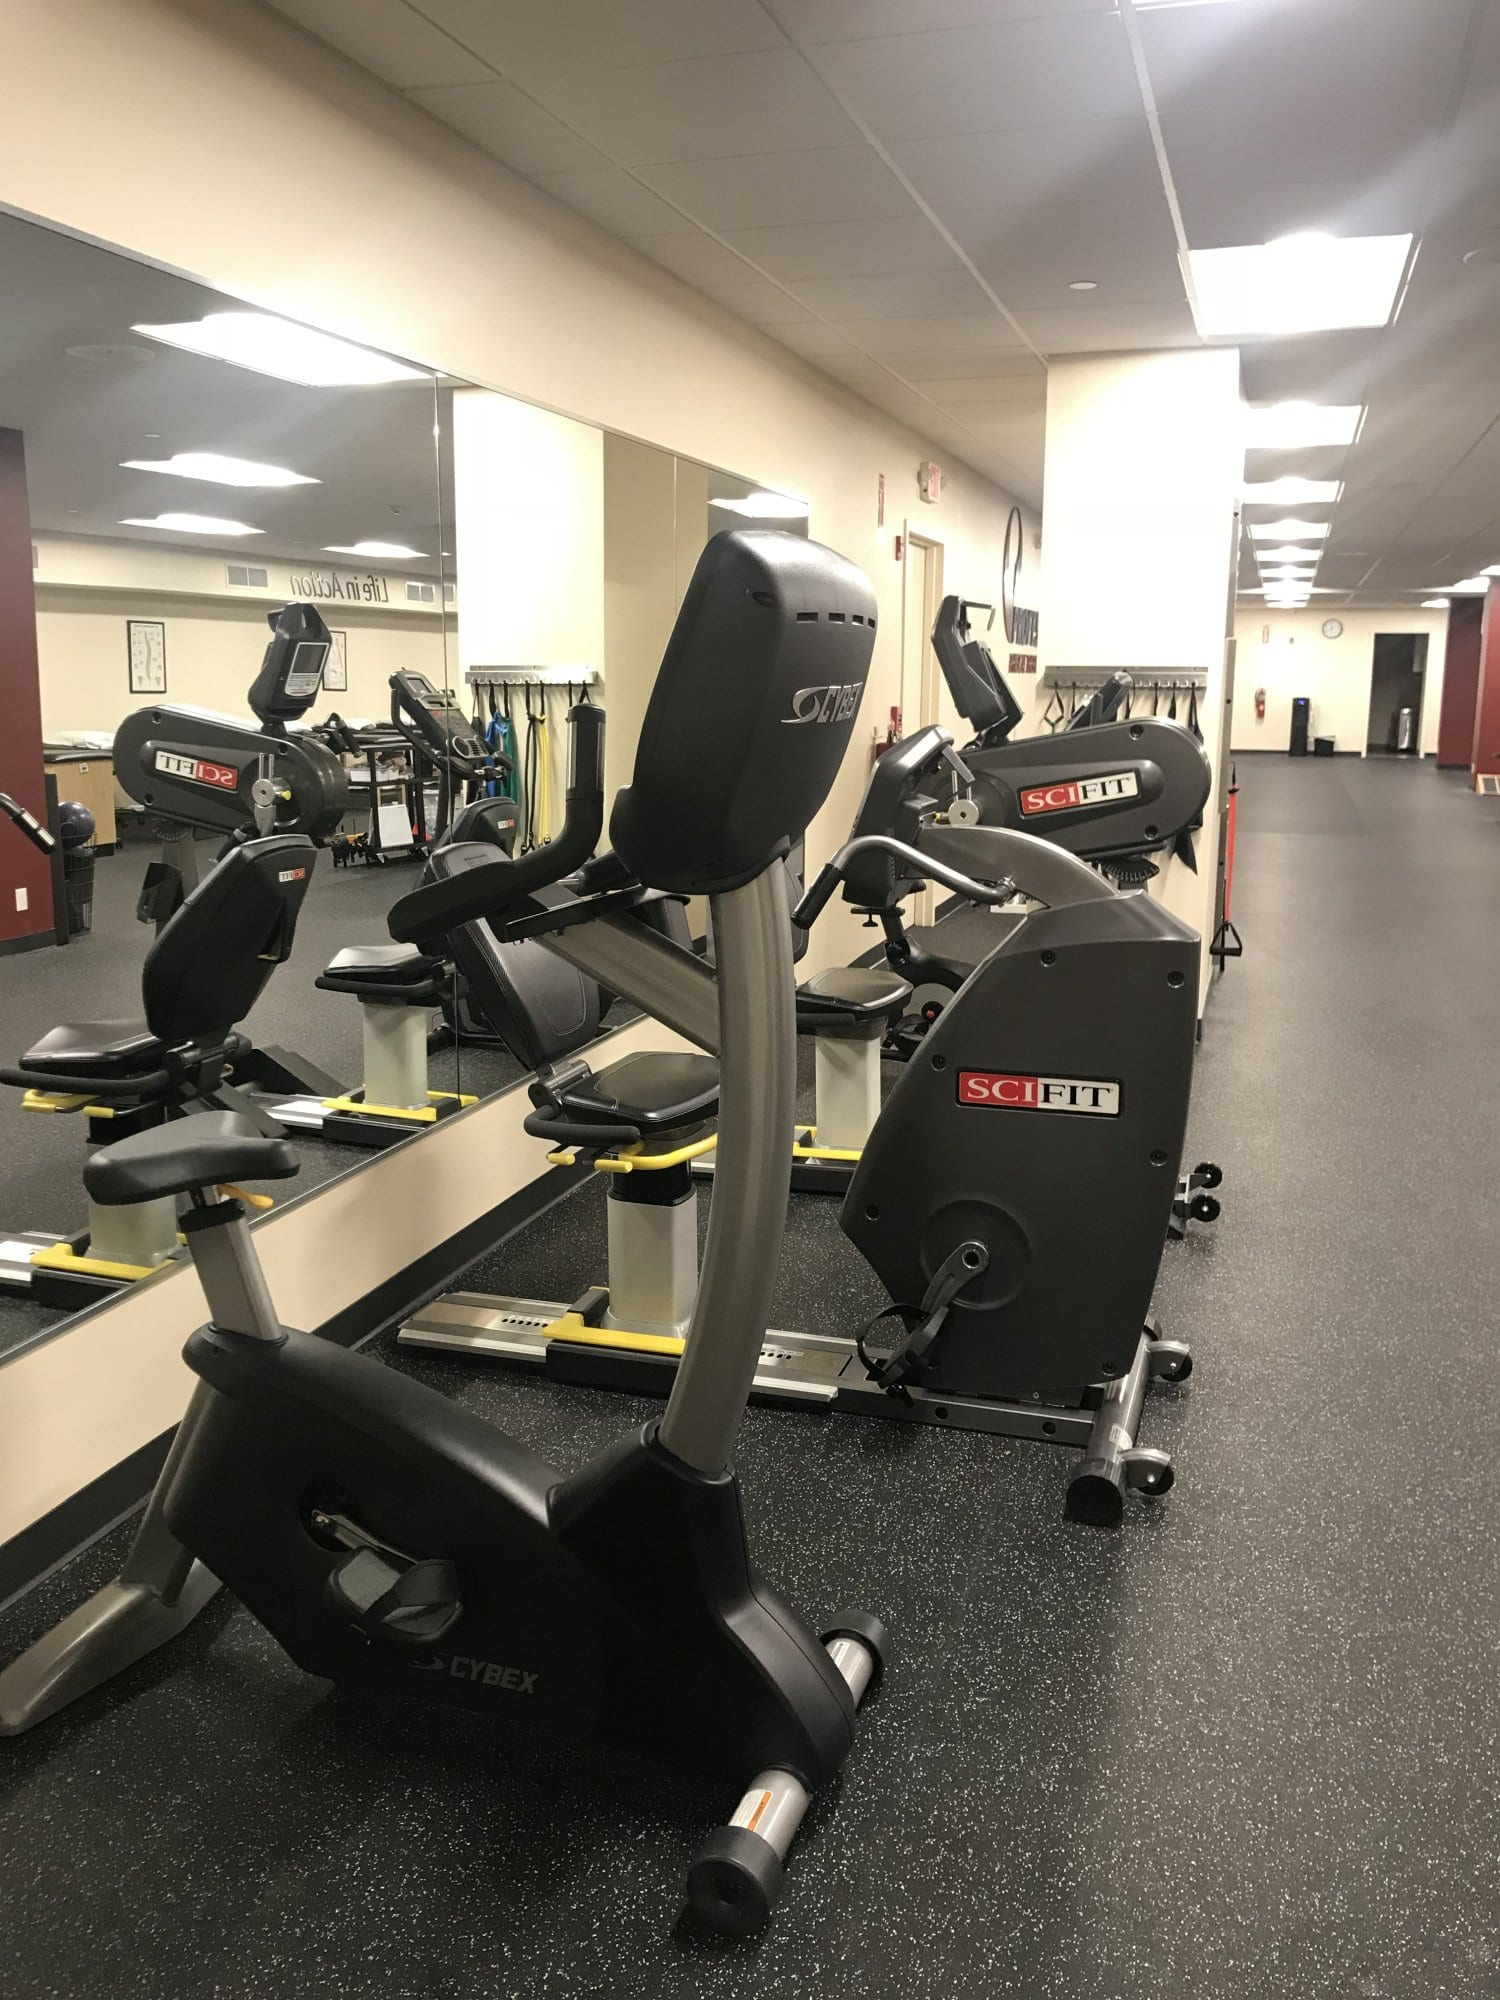 This is an image of the bikes at our physical therapy clinic in New Rochelle, New York. Bikes are great for leg workouts reducing knee pain.